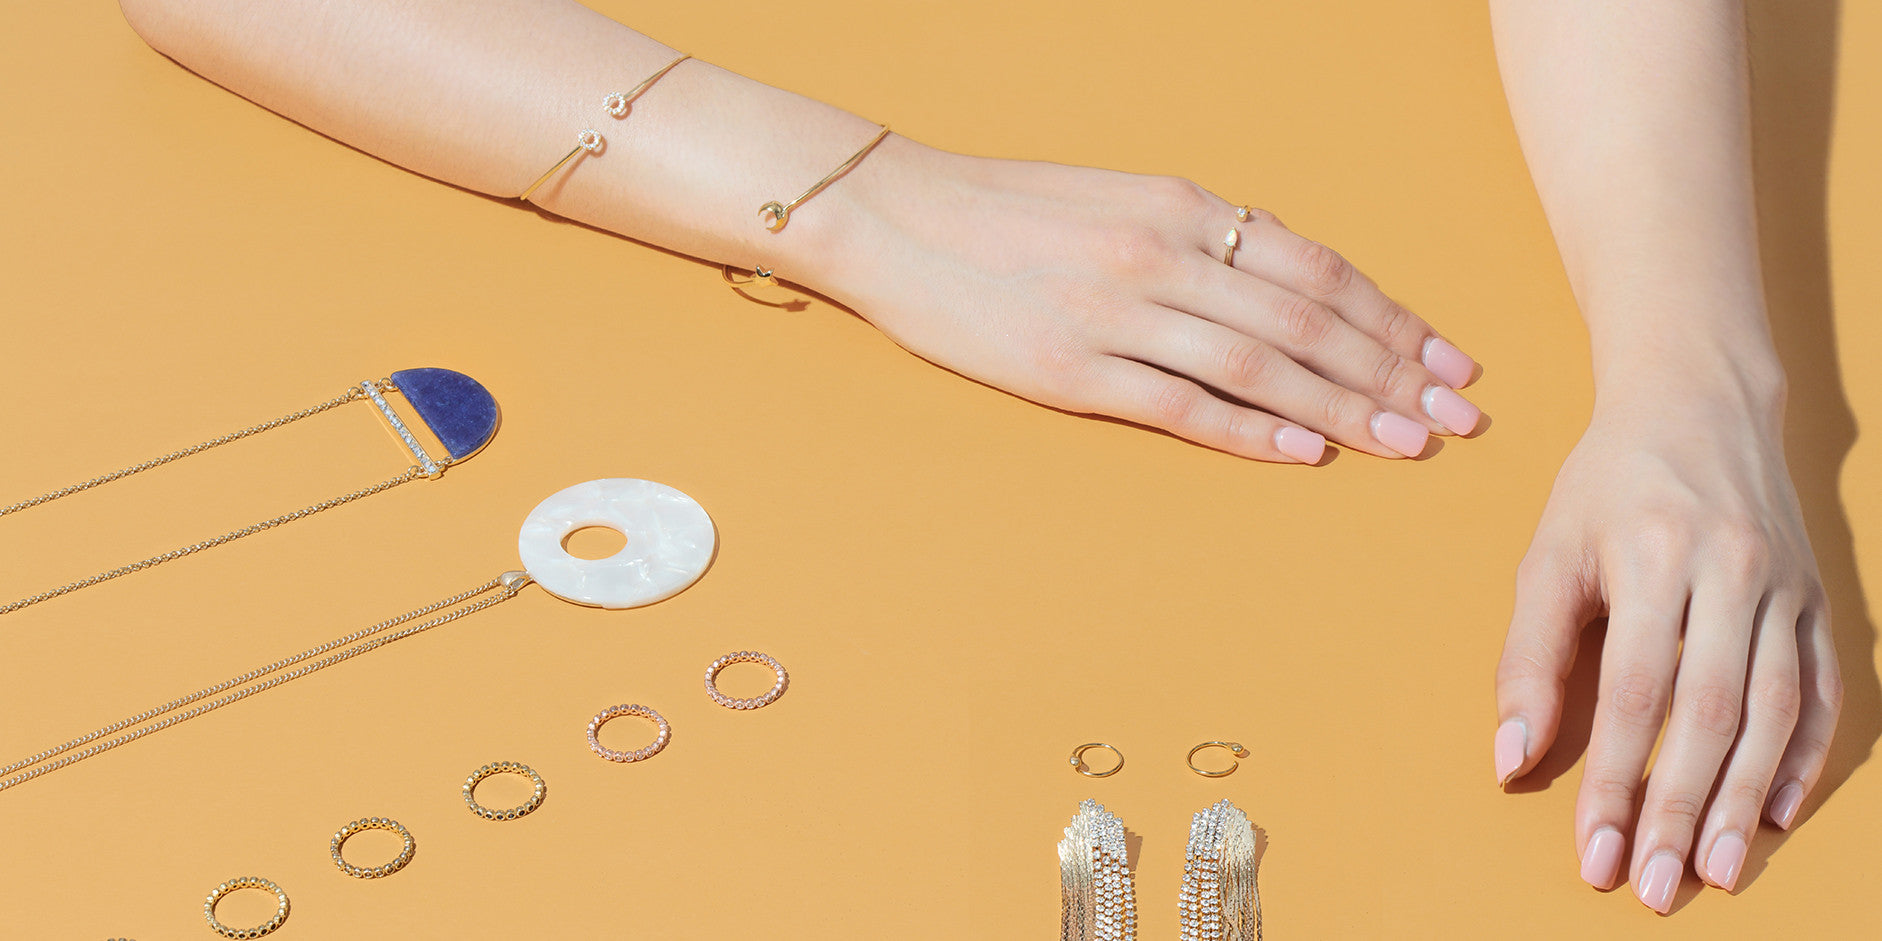 SMTH-small things jewellry shopsmth.com